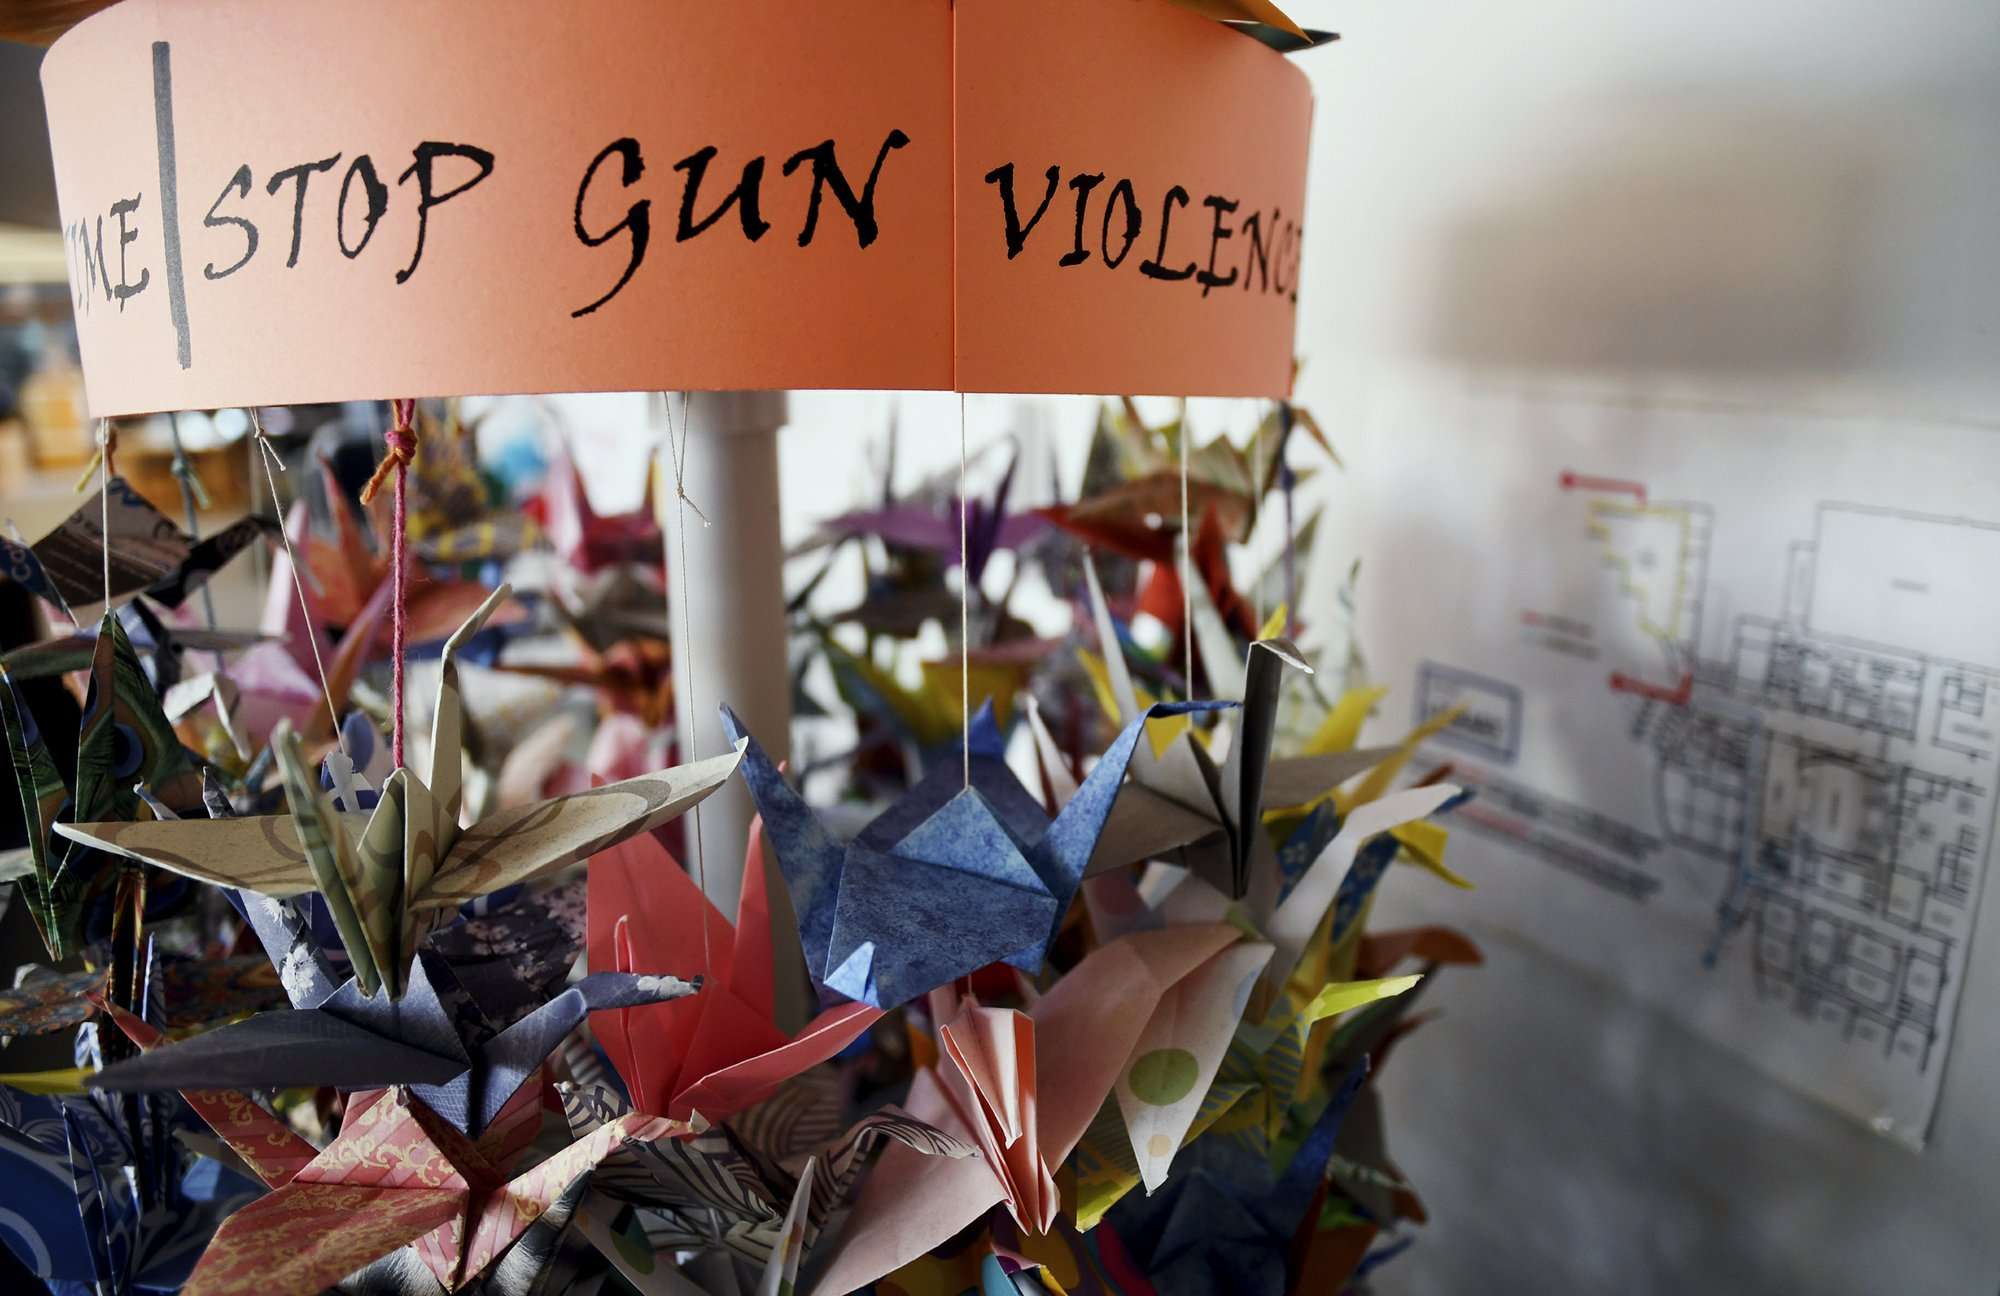 Columbine survivors helping others affected by massacres